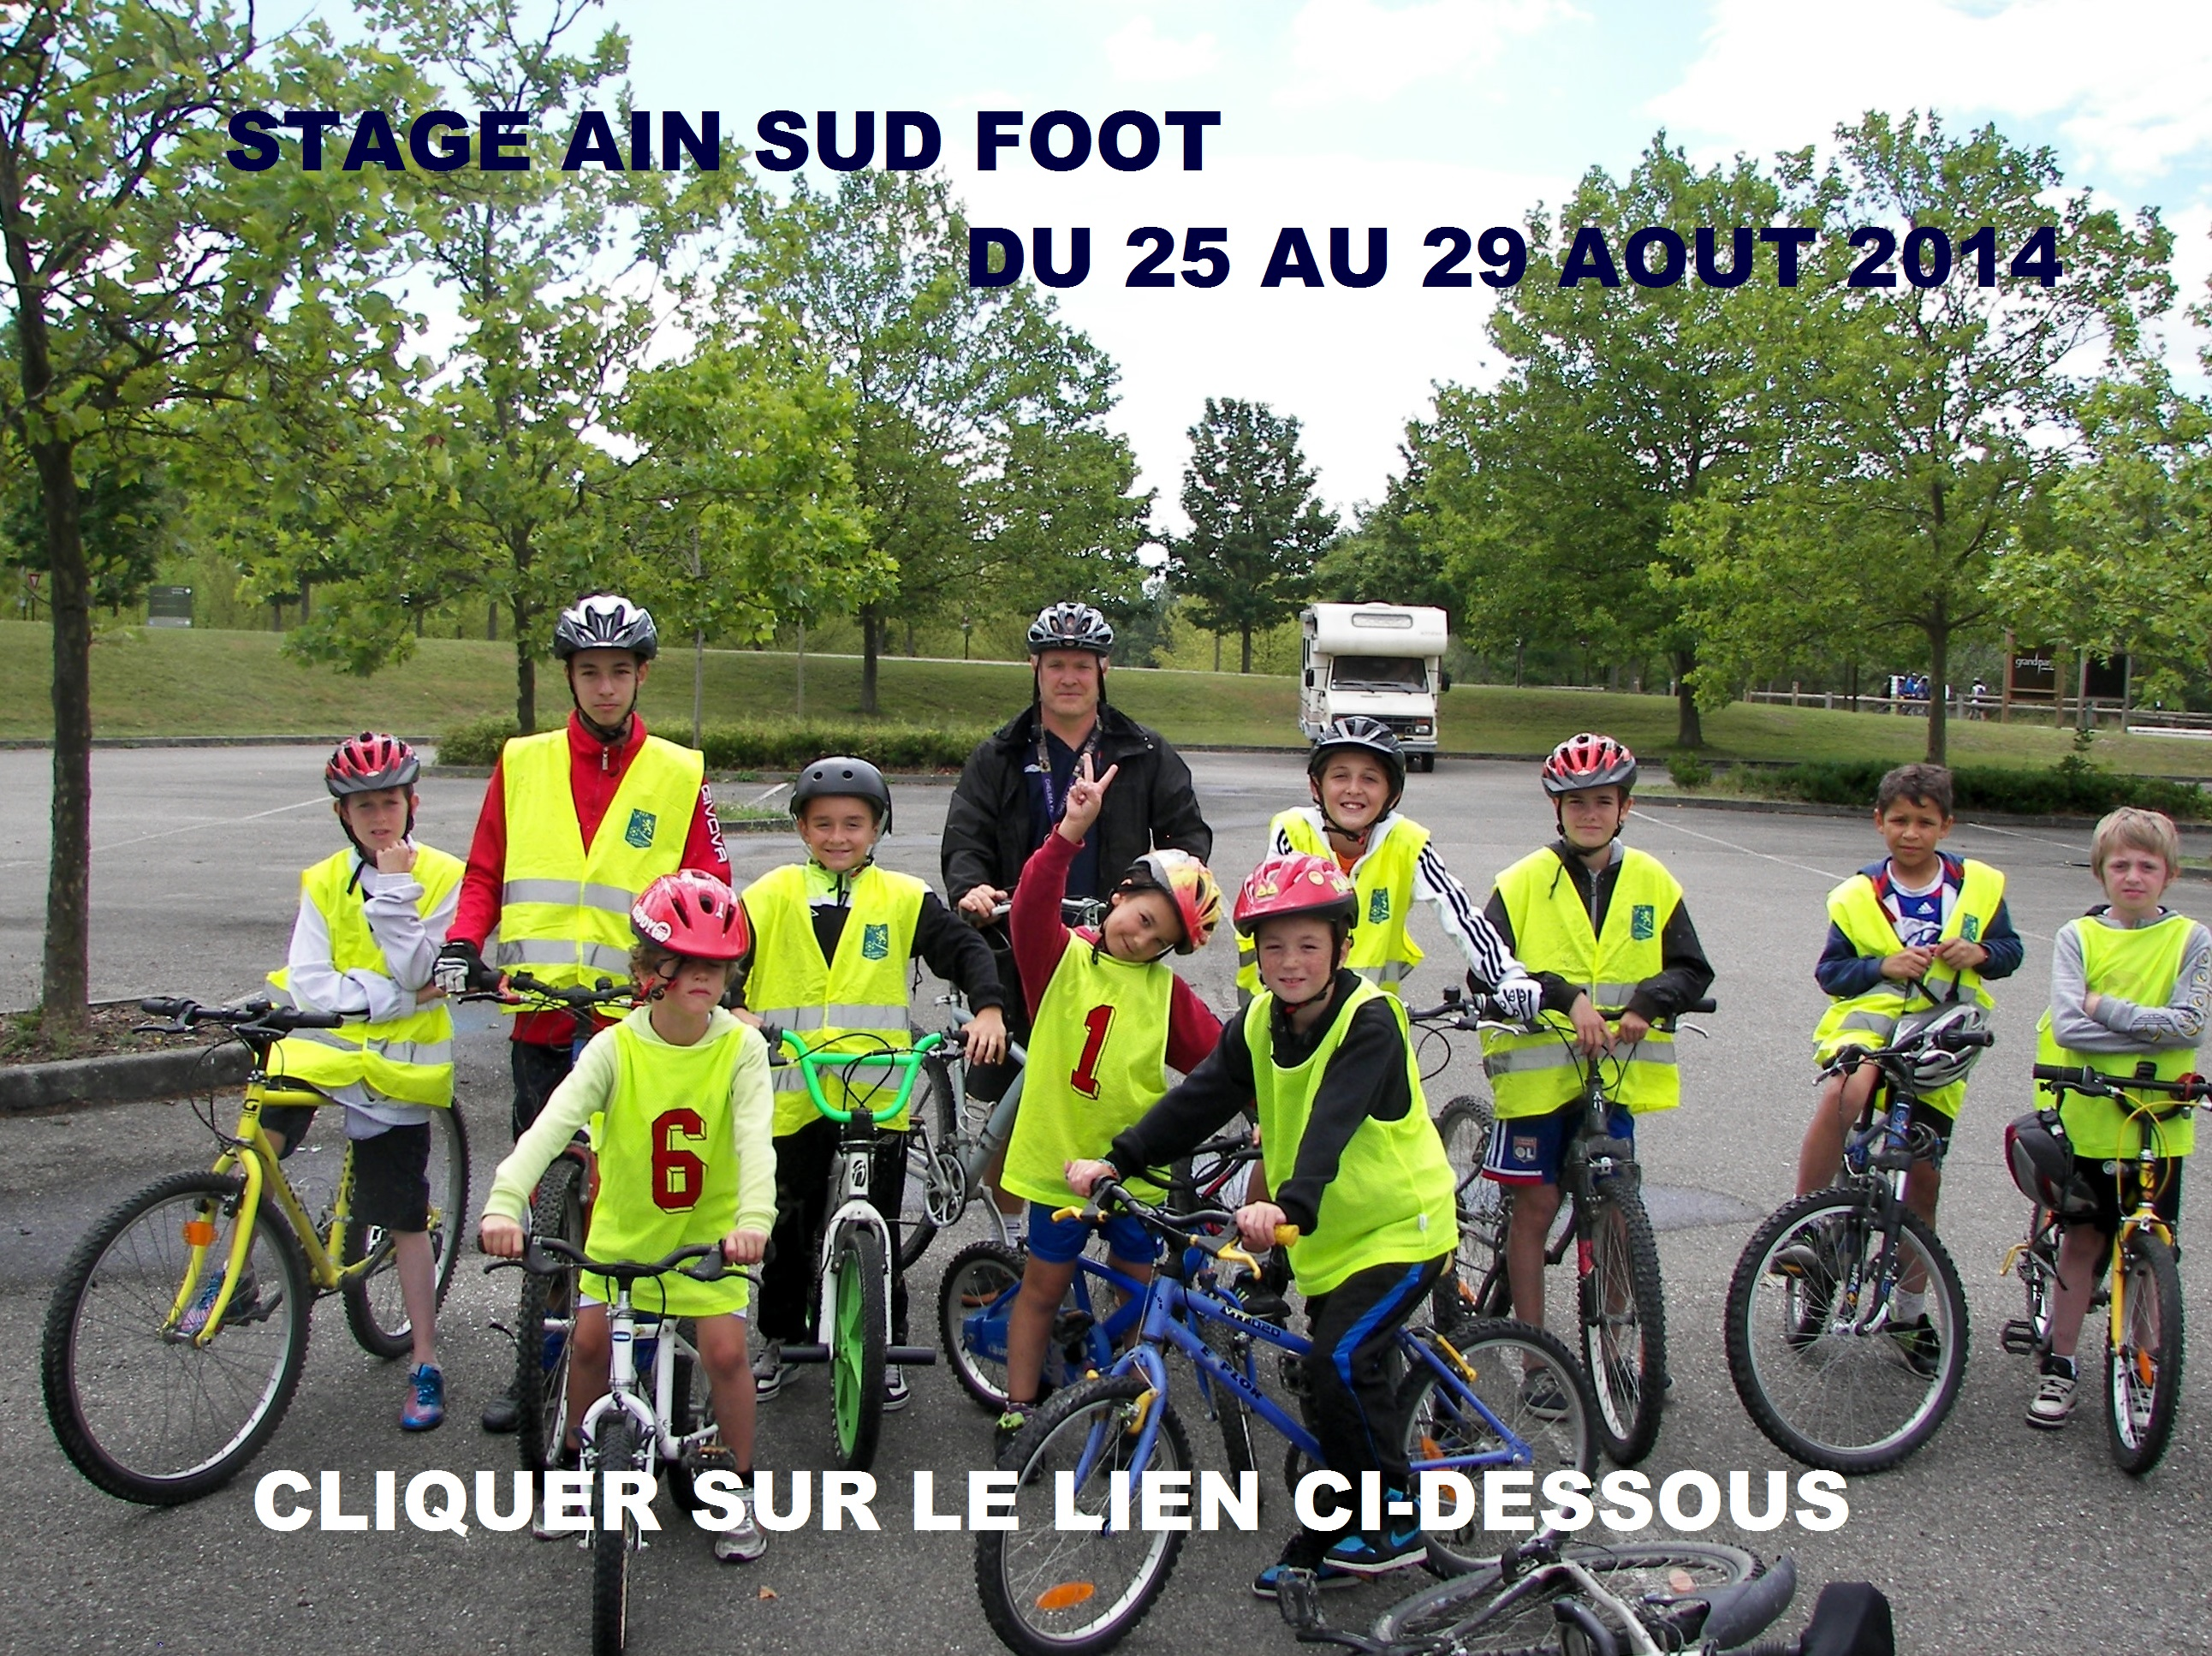 http://staff.footeo.com/uploads/ainsudfoot/Medias/PHOTO_VELO_site.jpg